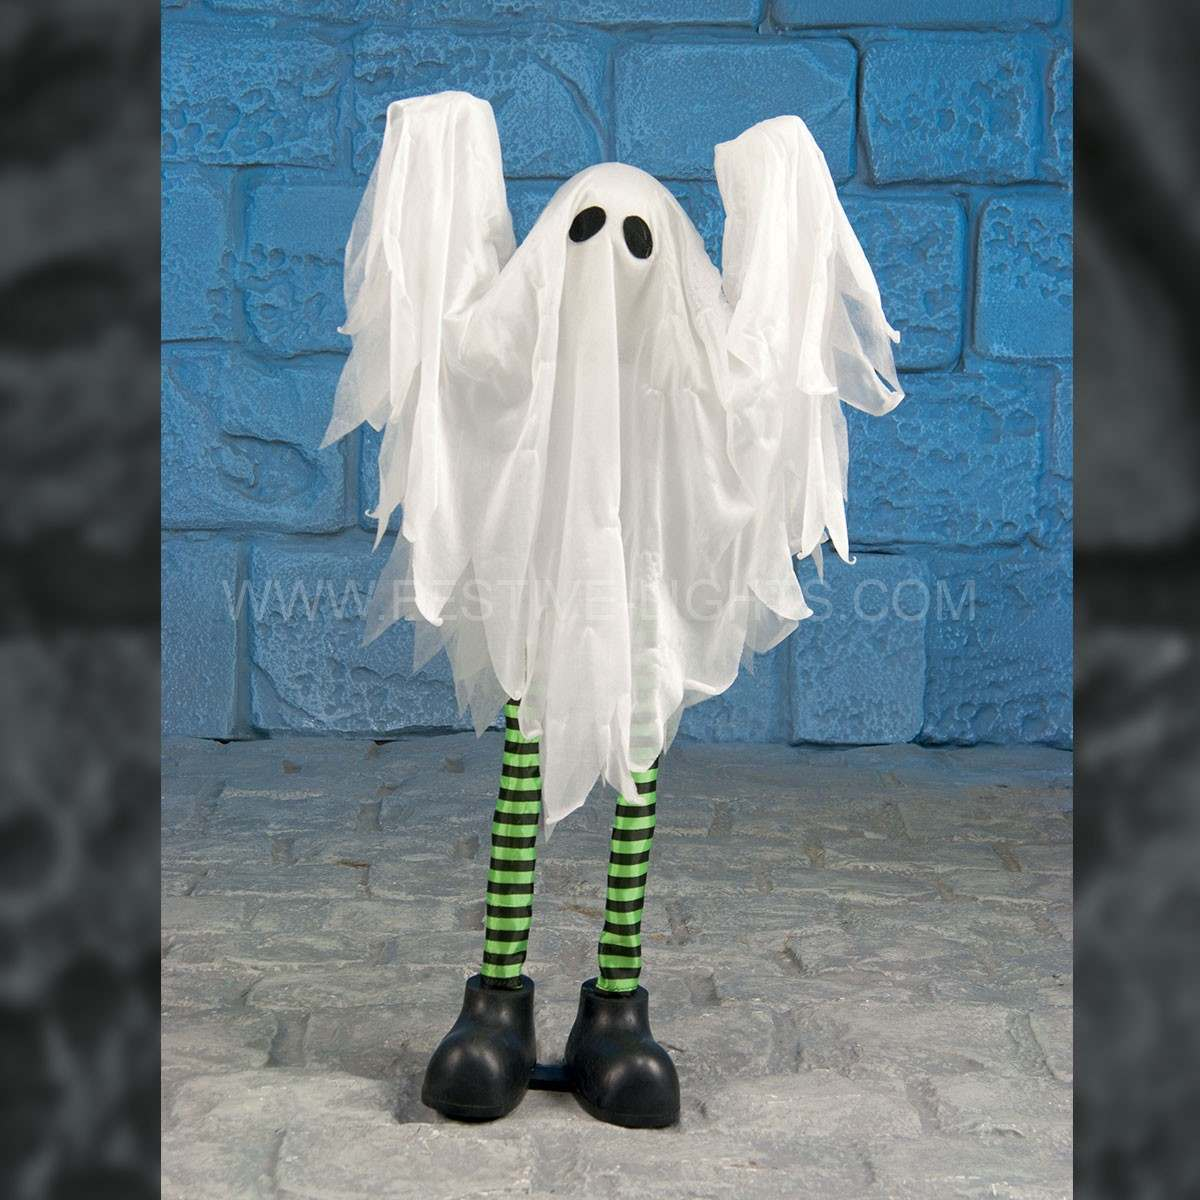 75cm Halloween Battery Operated Animated Standing Ghost with Sound and Movement